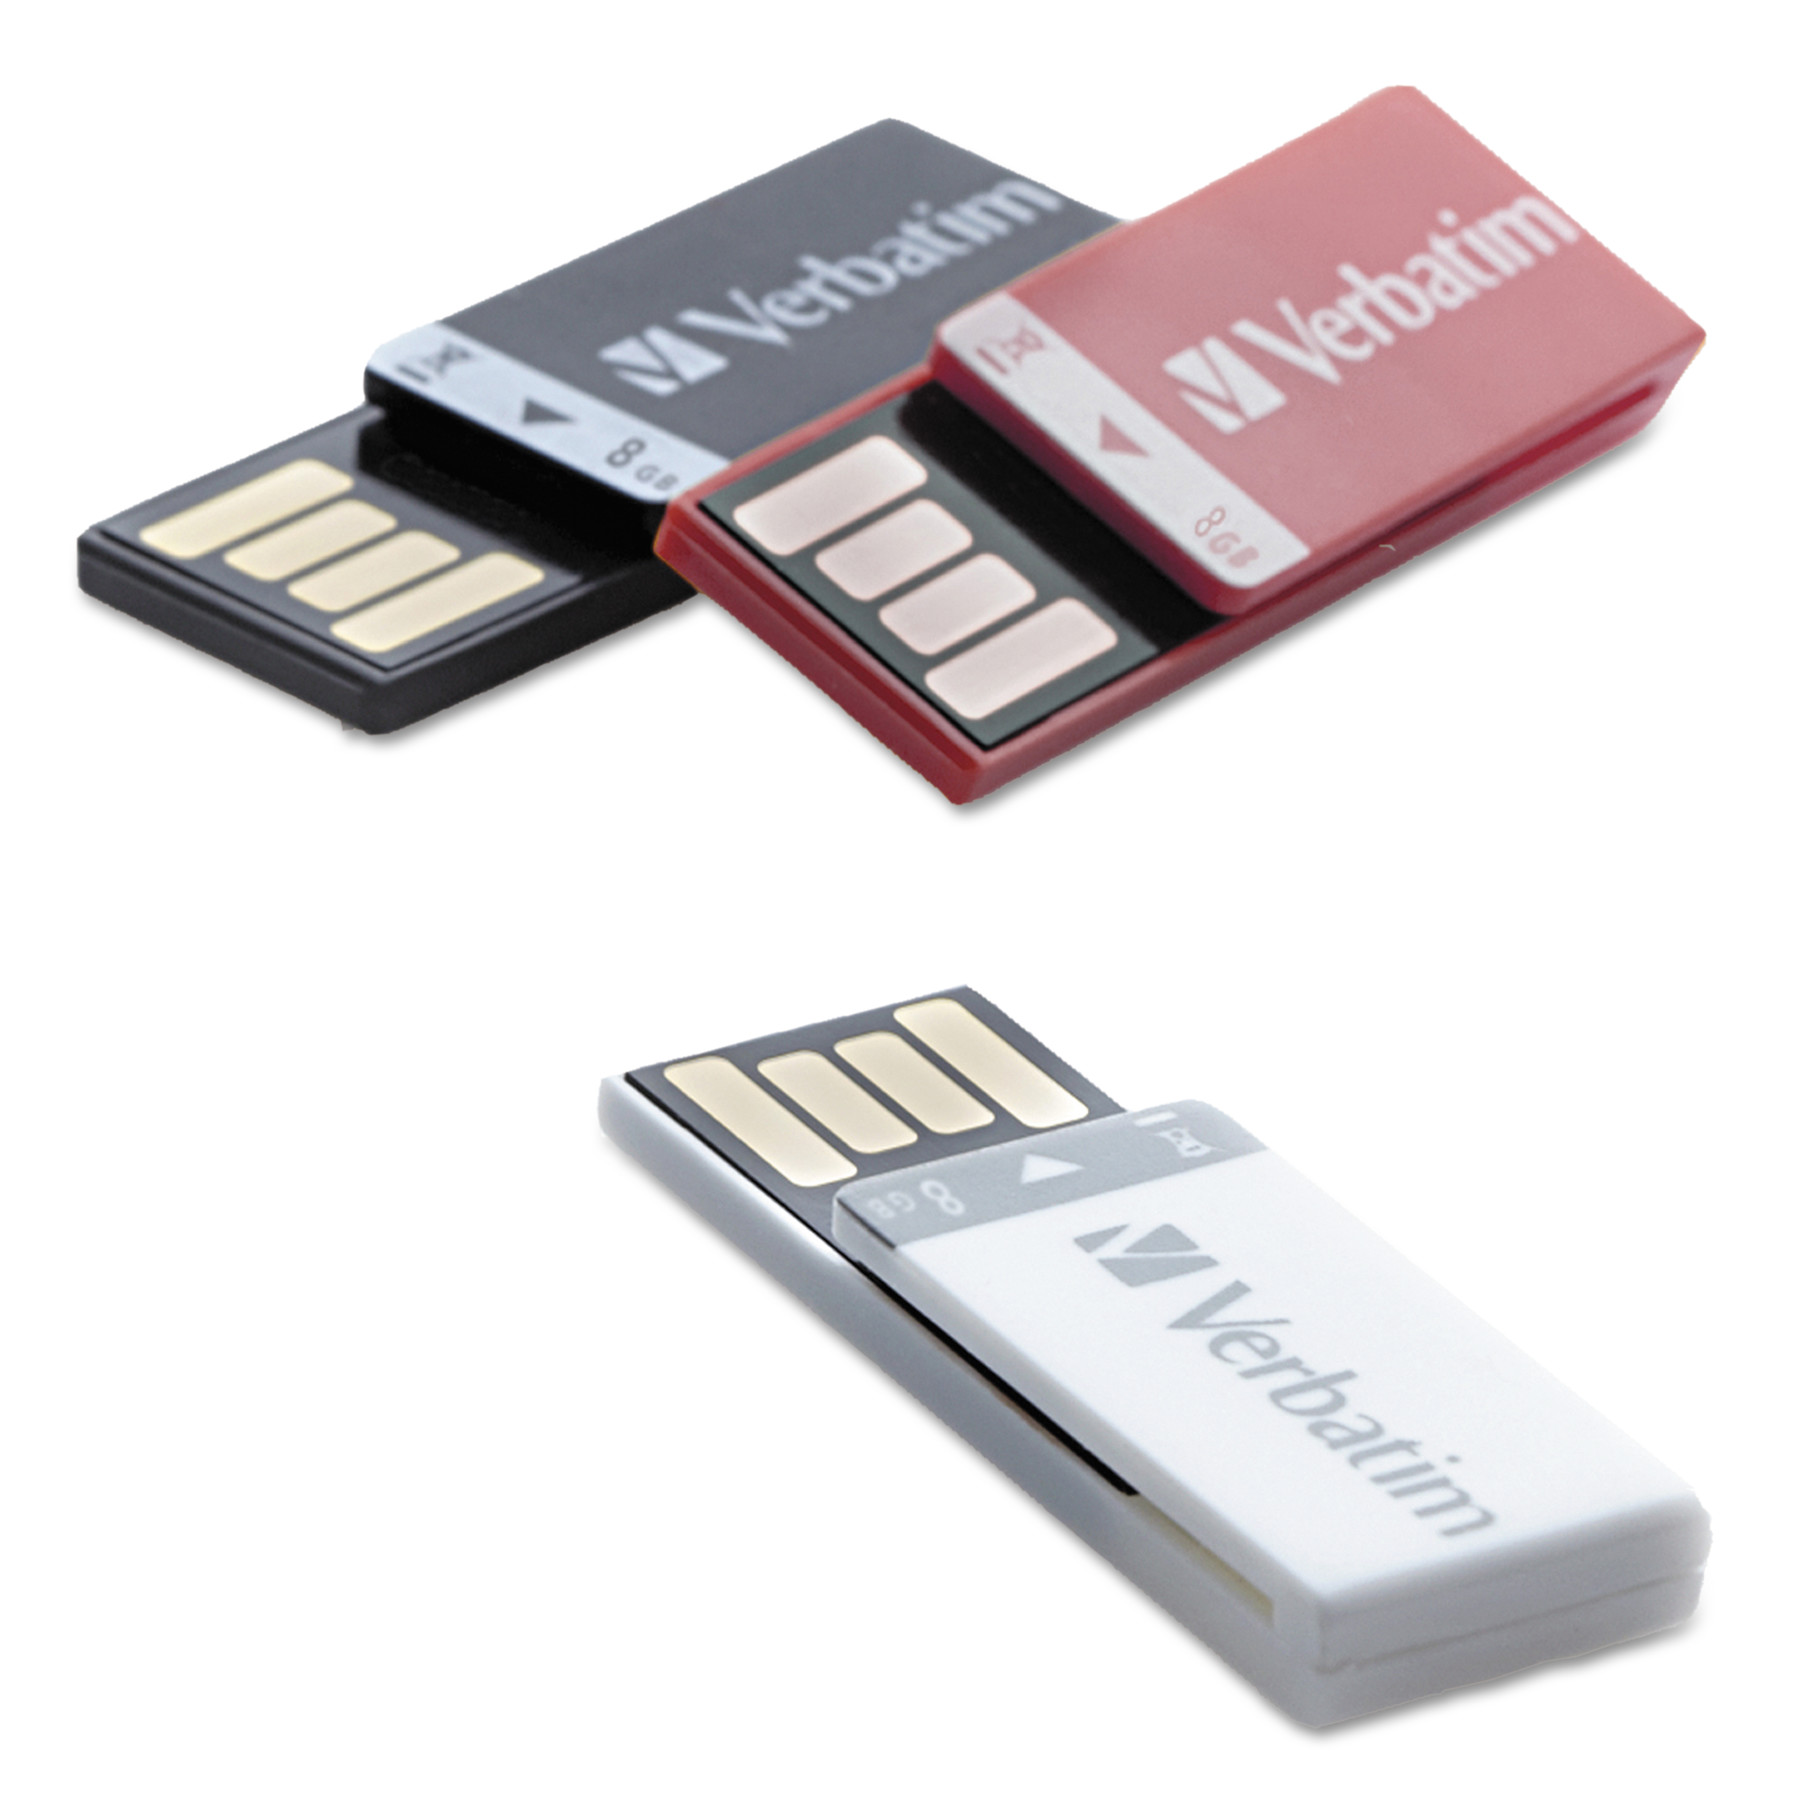 Verbatim Clip-it USB 2.0 Flash Drive, 8GB, Black/Red/White, 3/Pack -VER98674